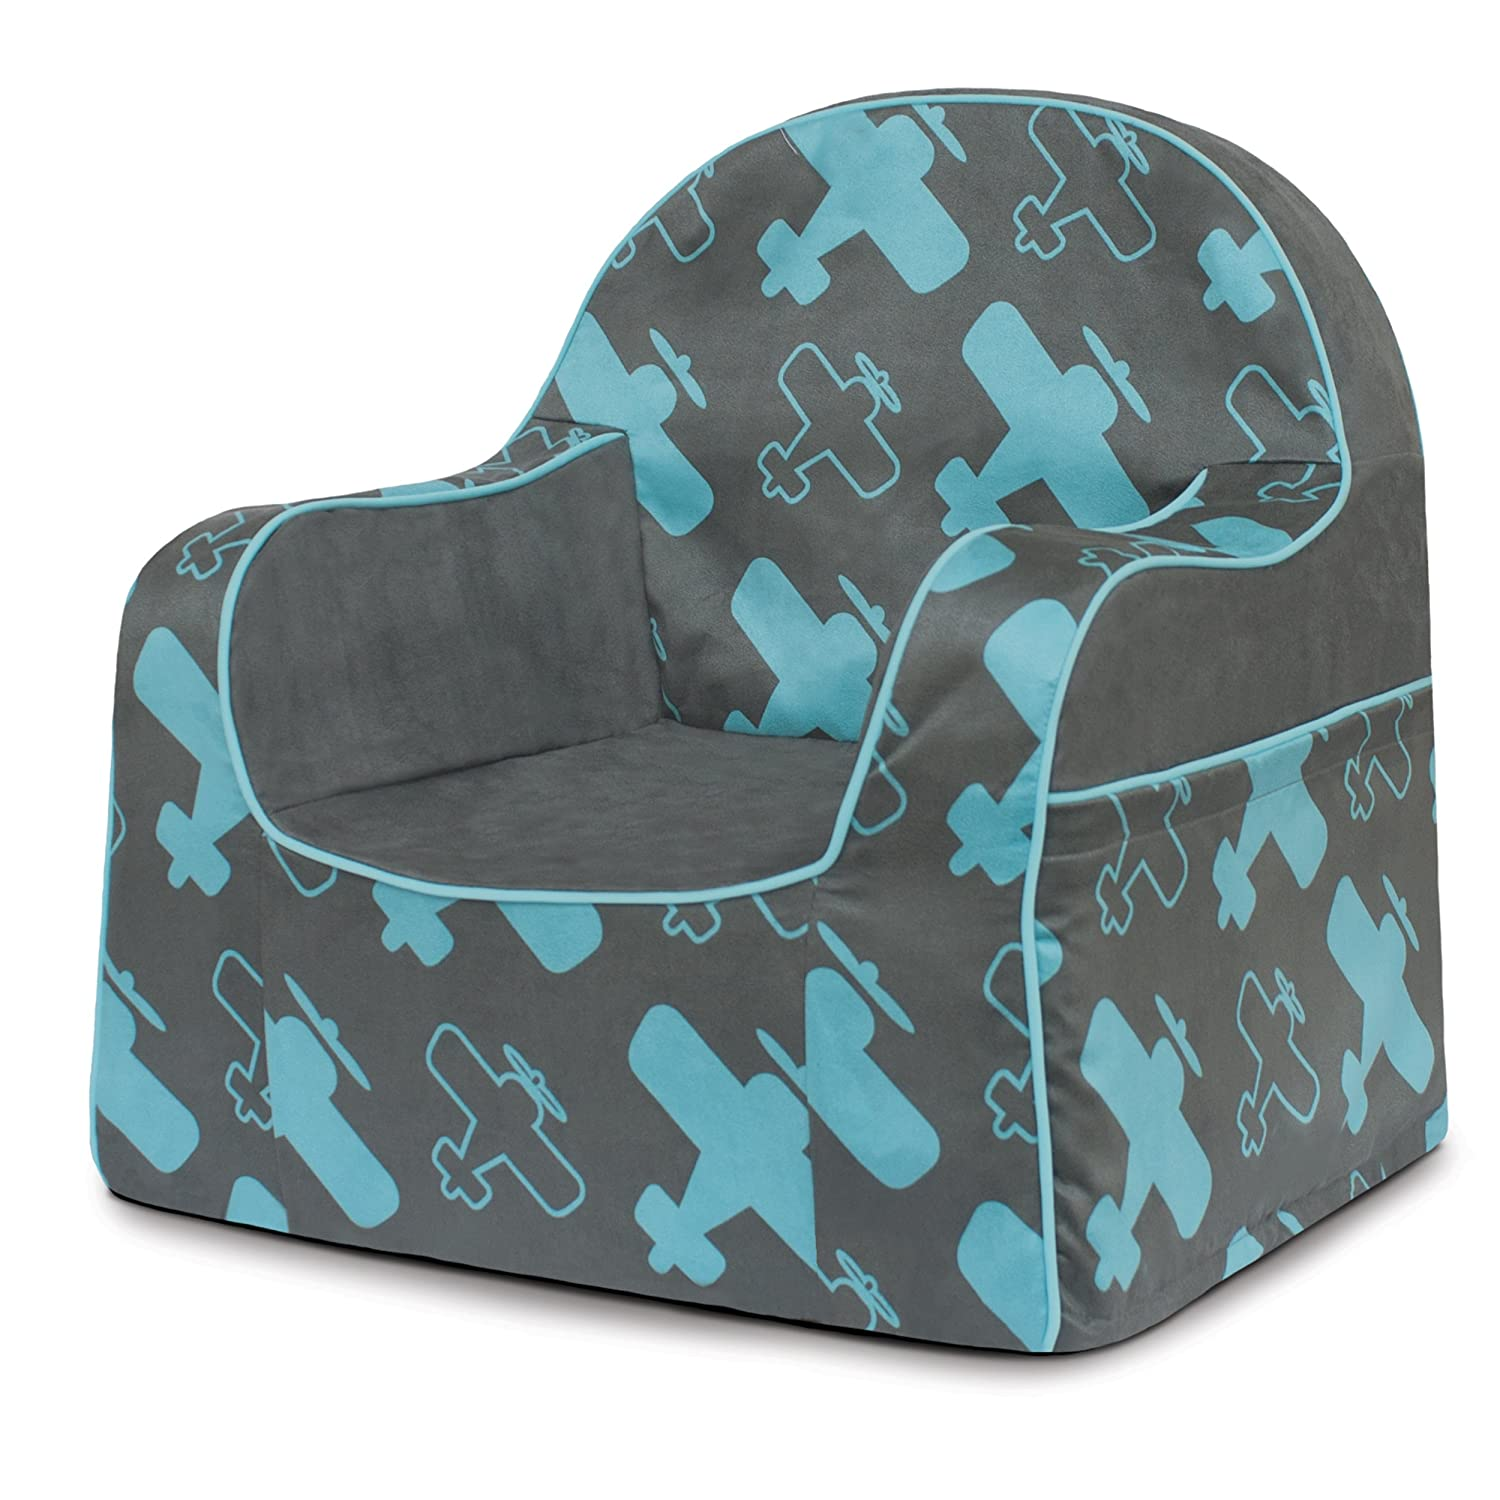 P'kolino PKFFLRBP Little Reader Chair - Planes, Blue/Grey P' kolino